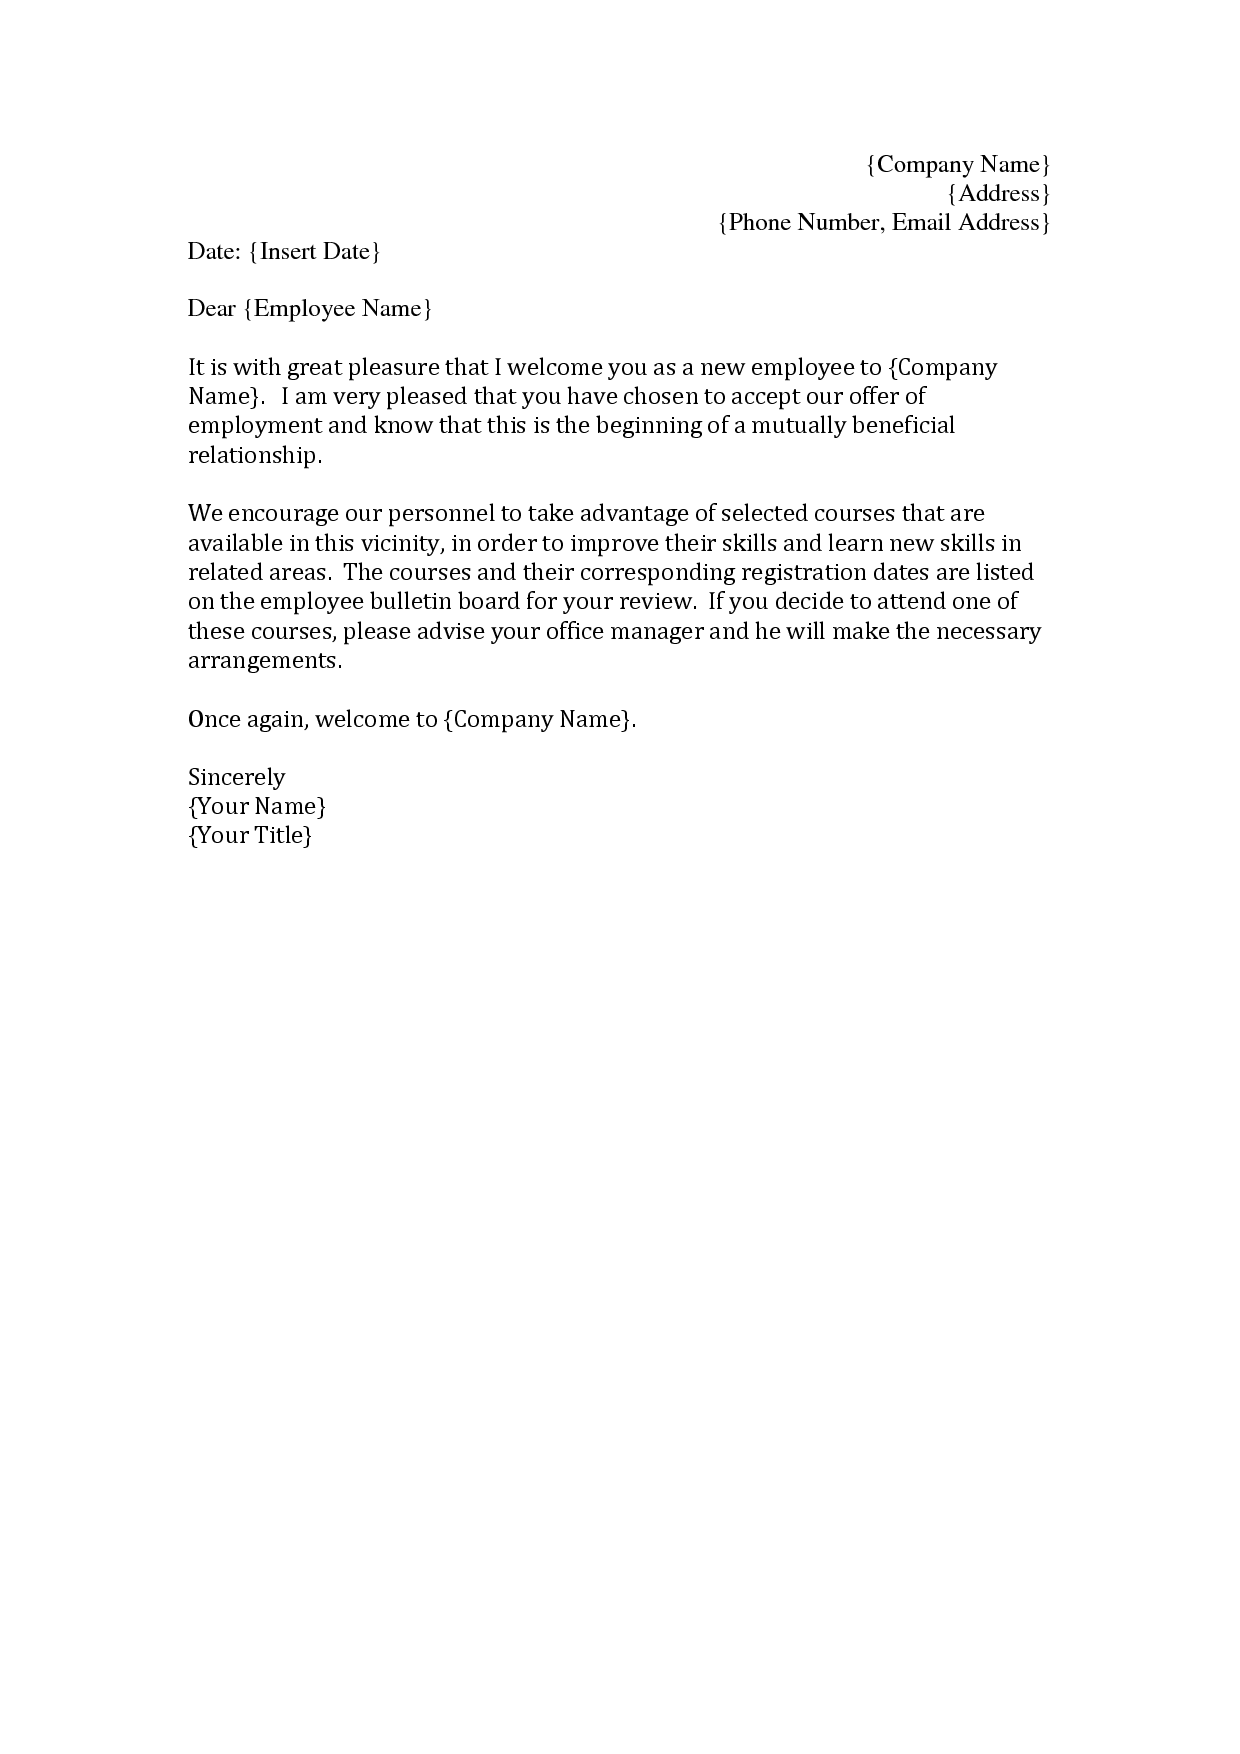 Employee Welcome Letter Template from pixy.org